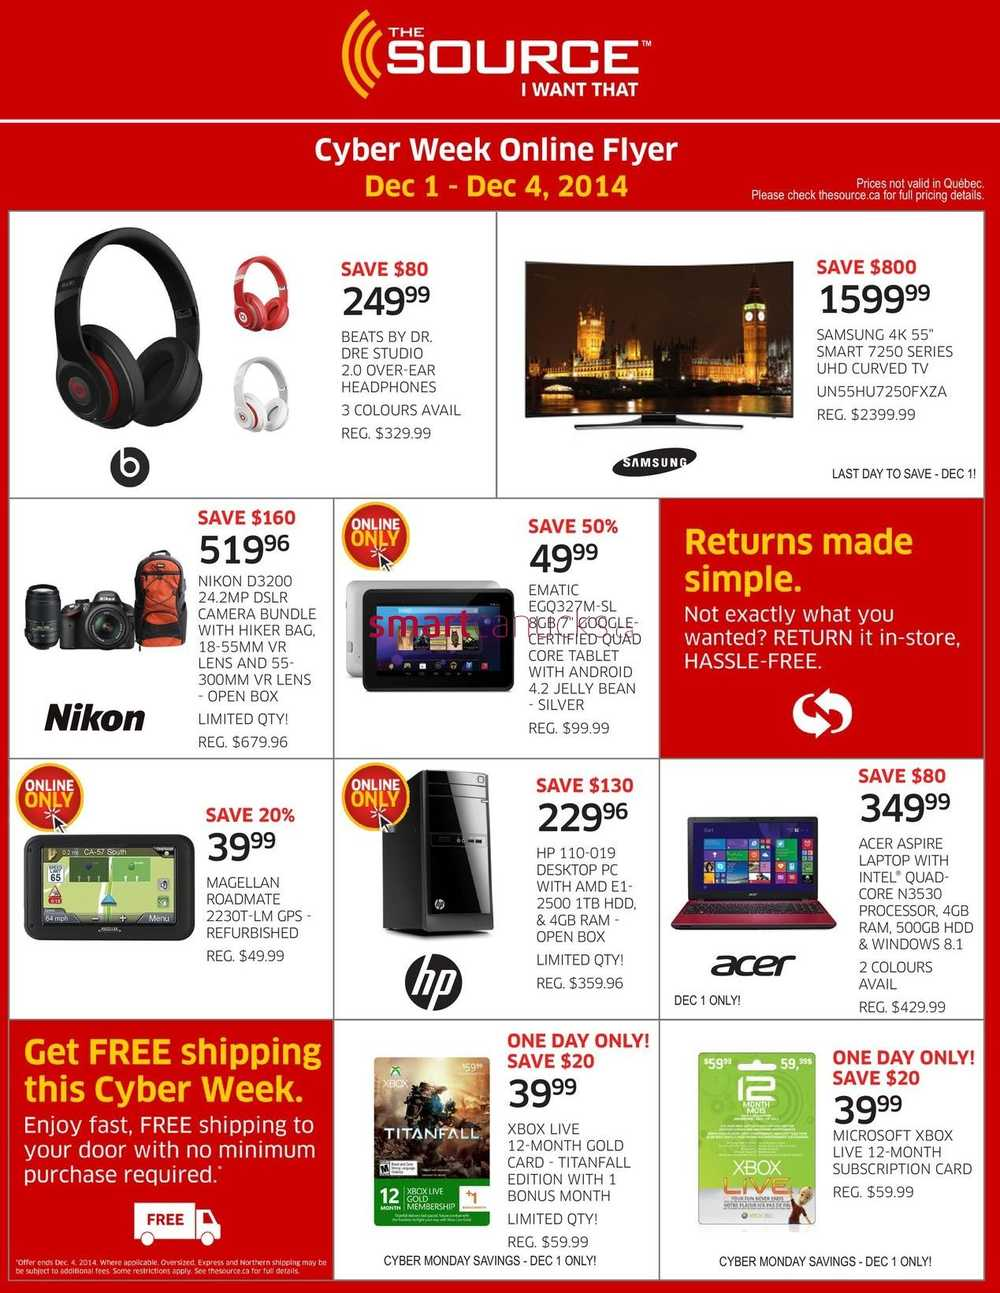 the source cyber monday online flyer 2014